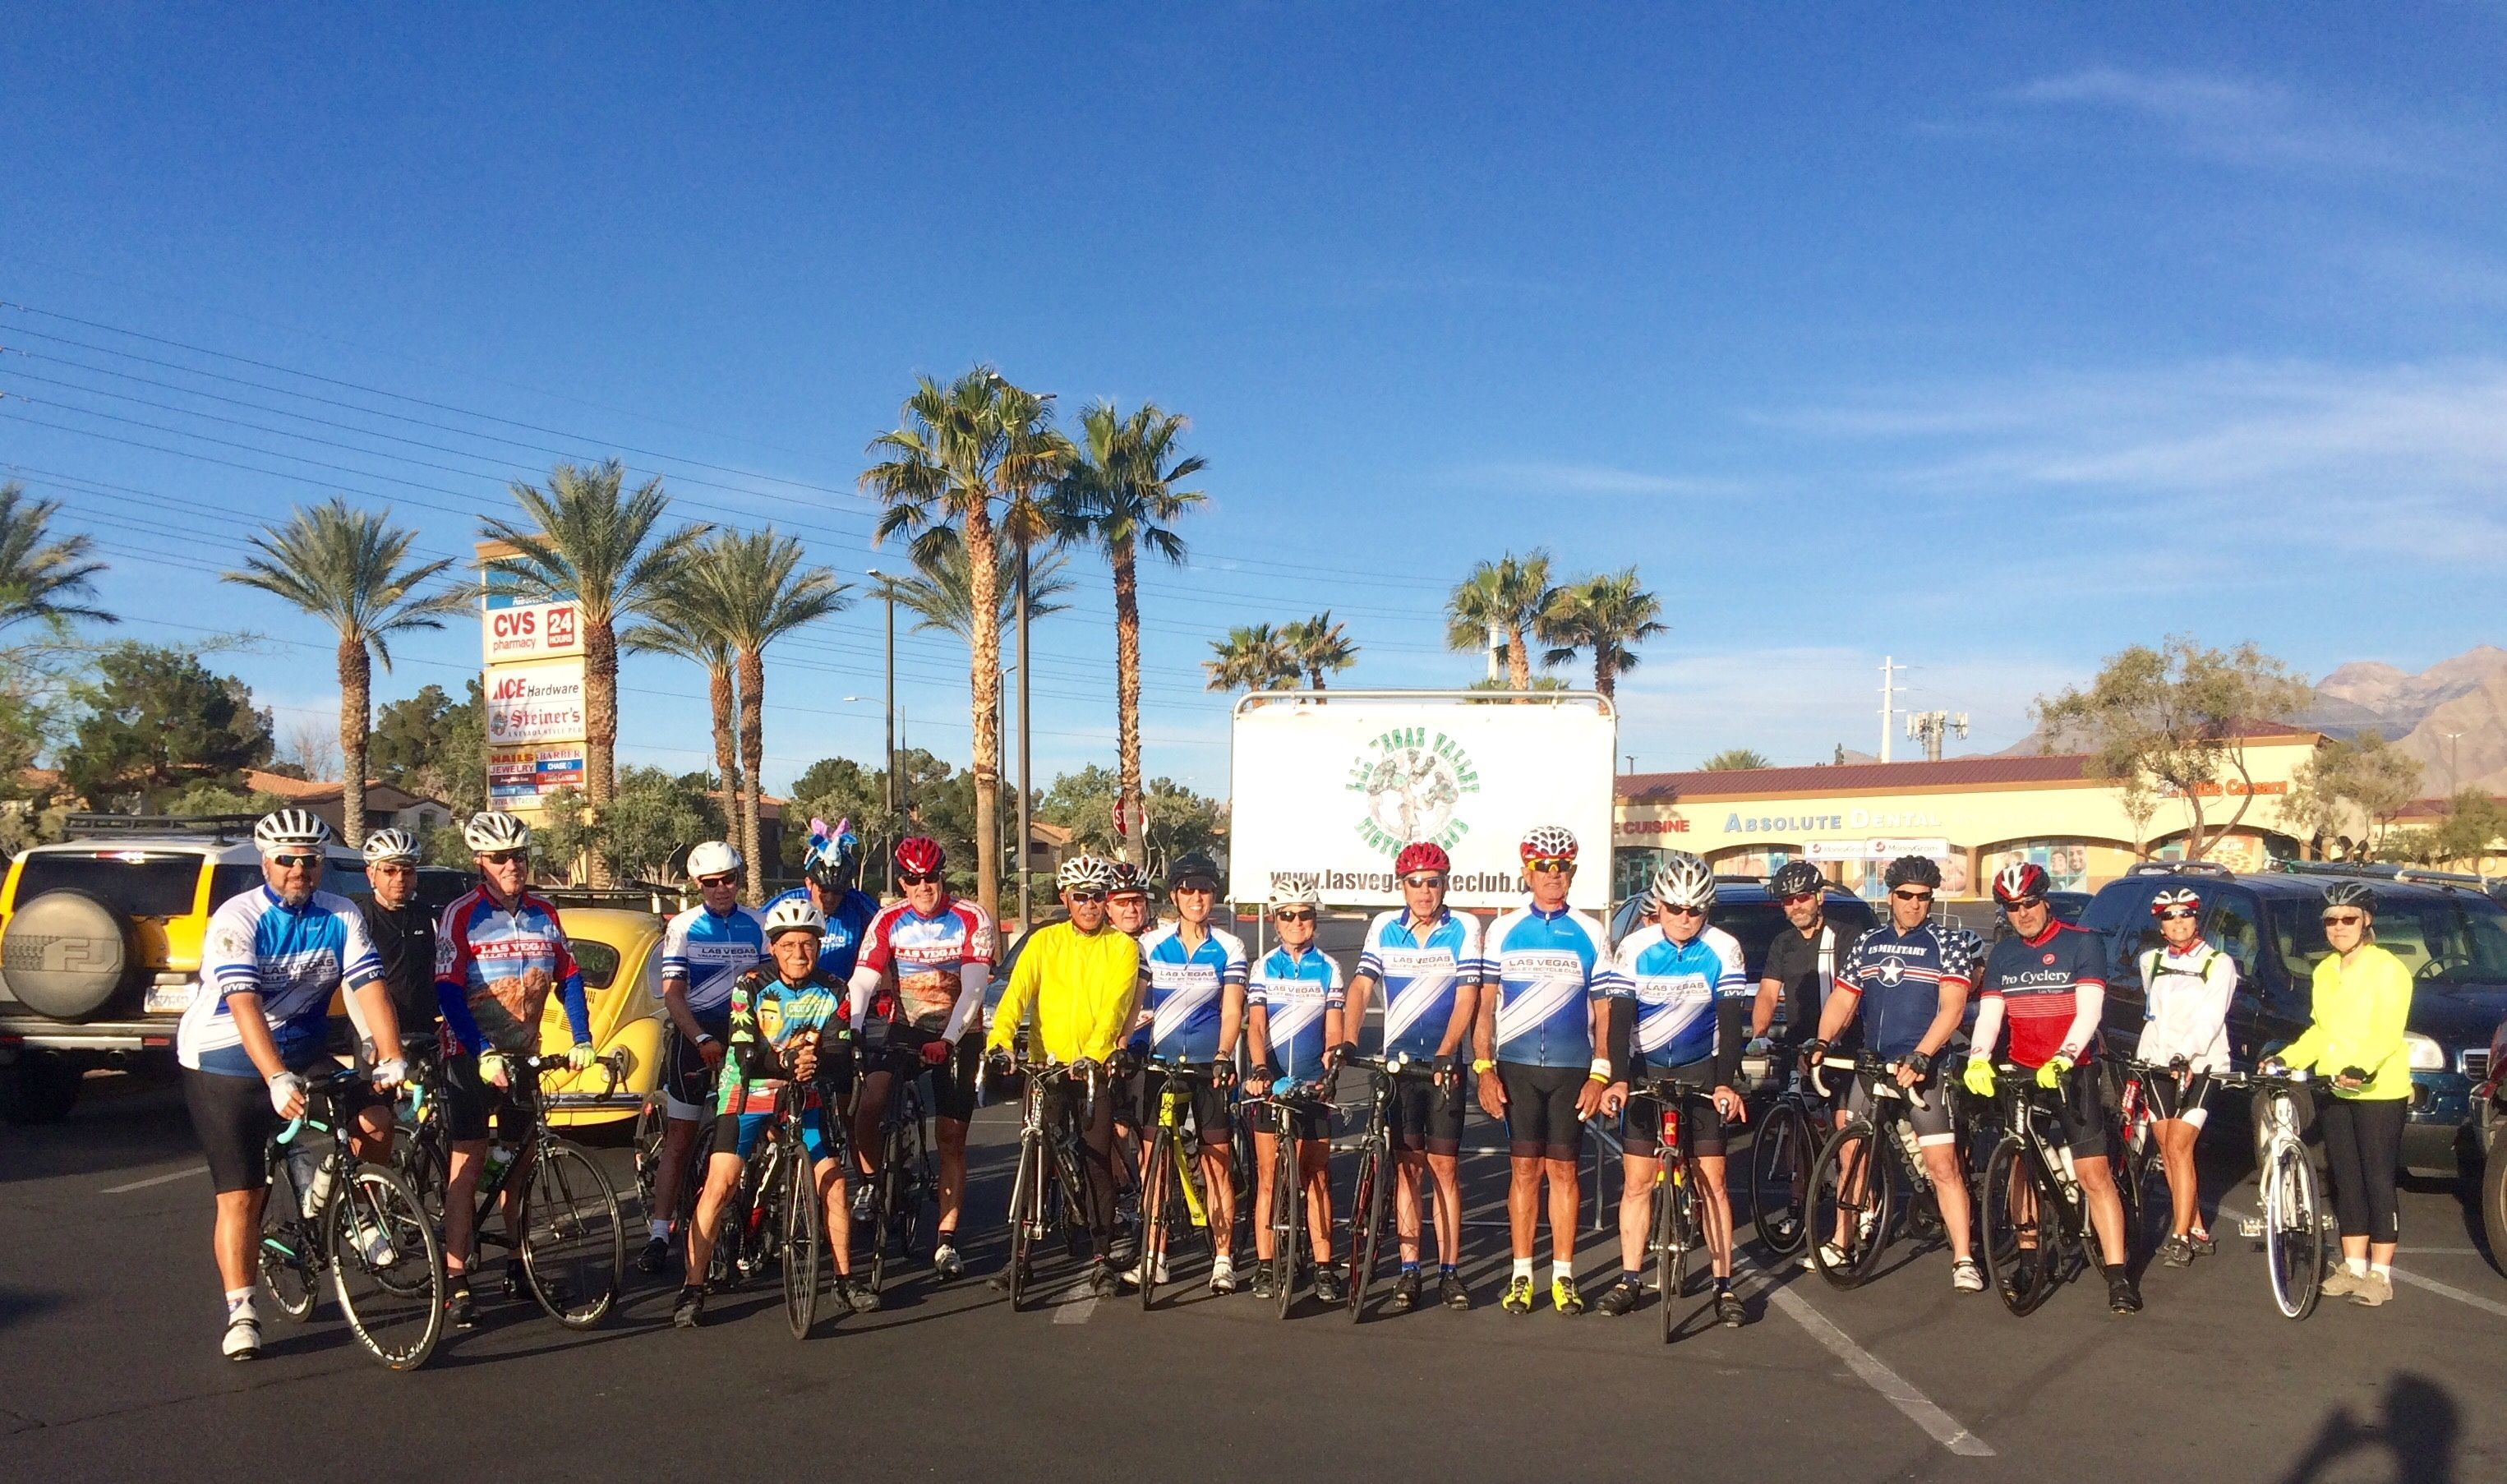 Las Vegas Valley Bicycle Club